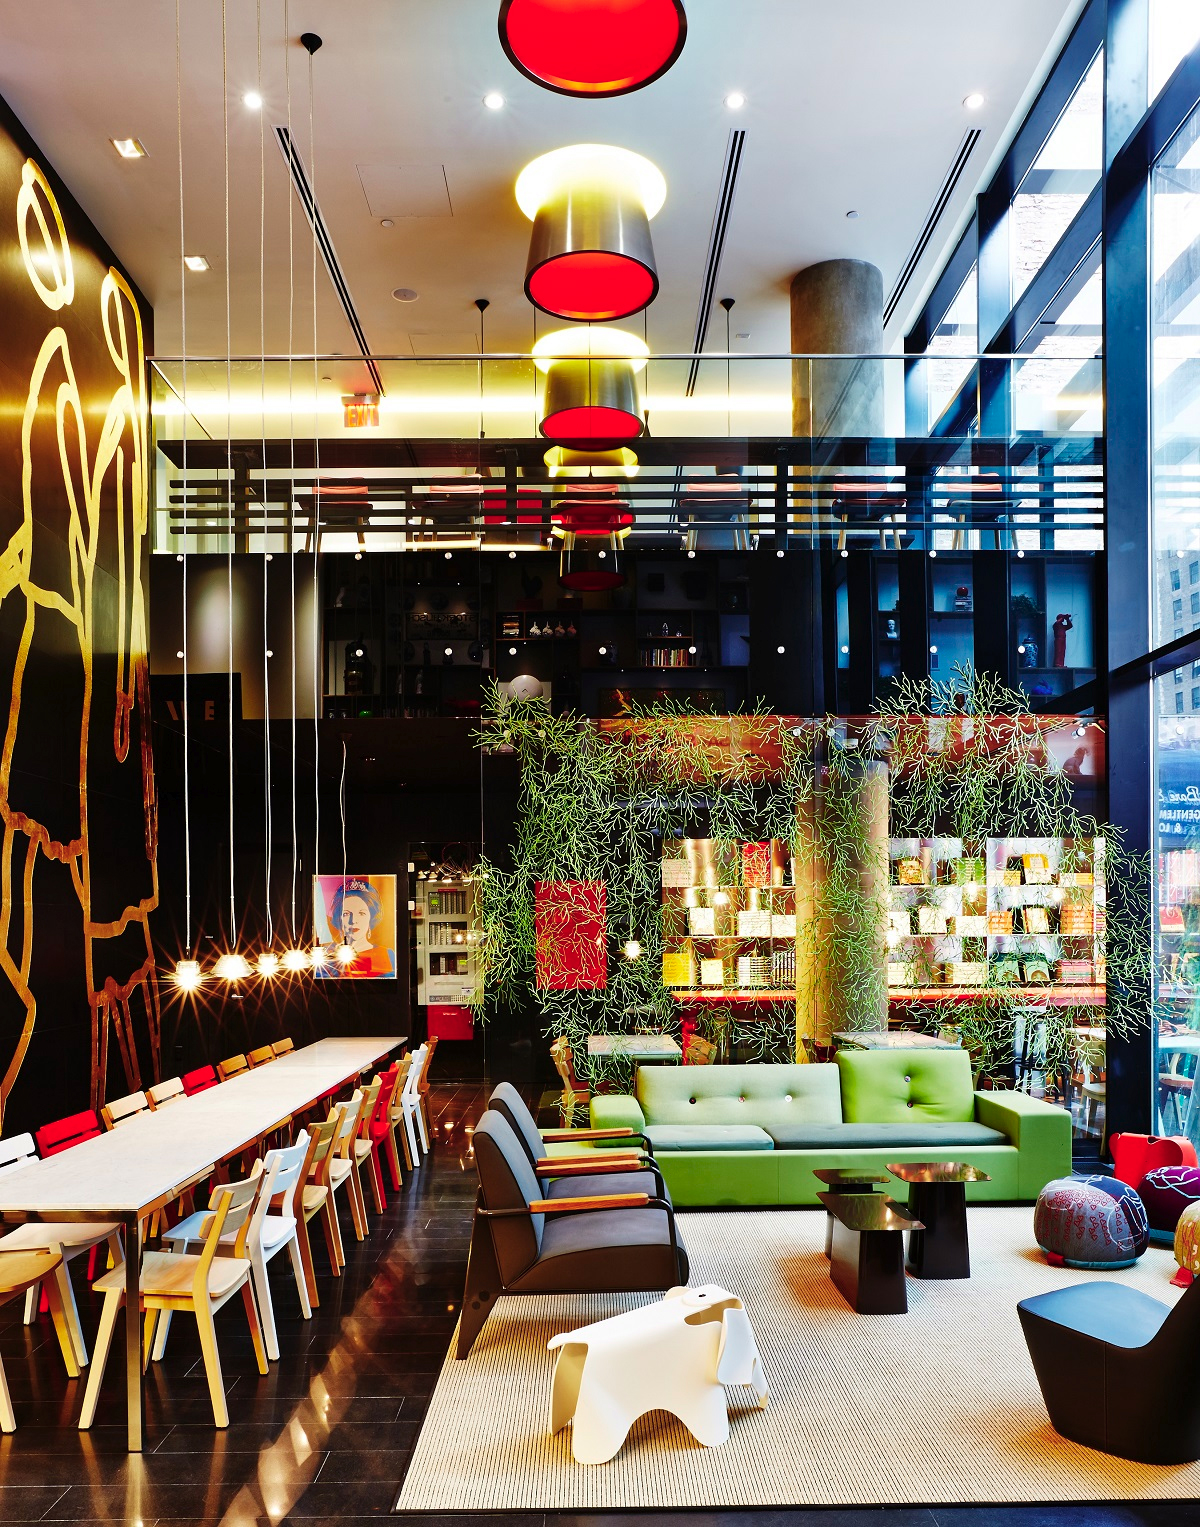 New citizenM hotels in Paris and New York